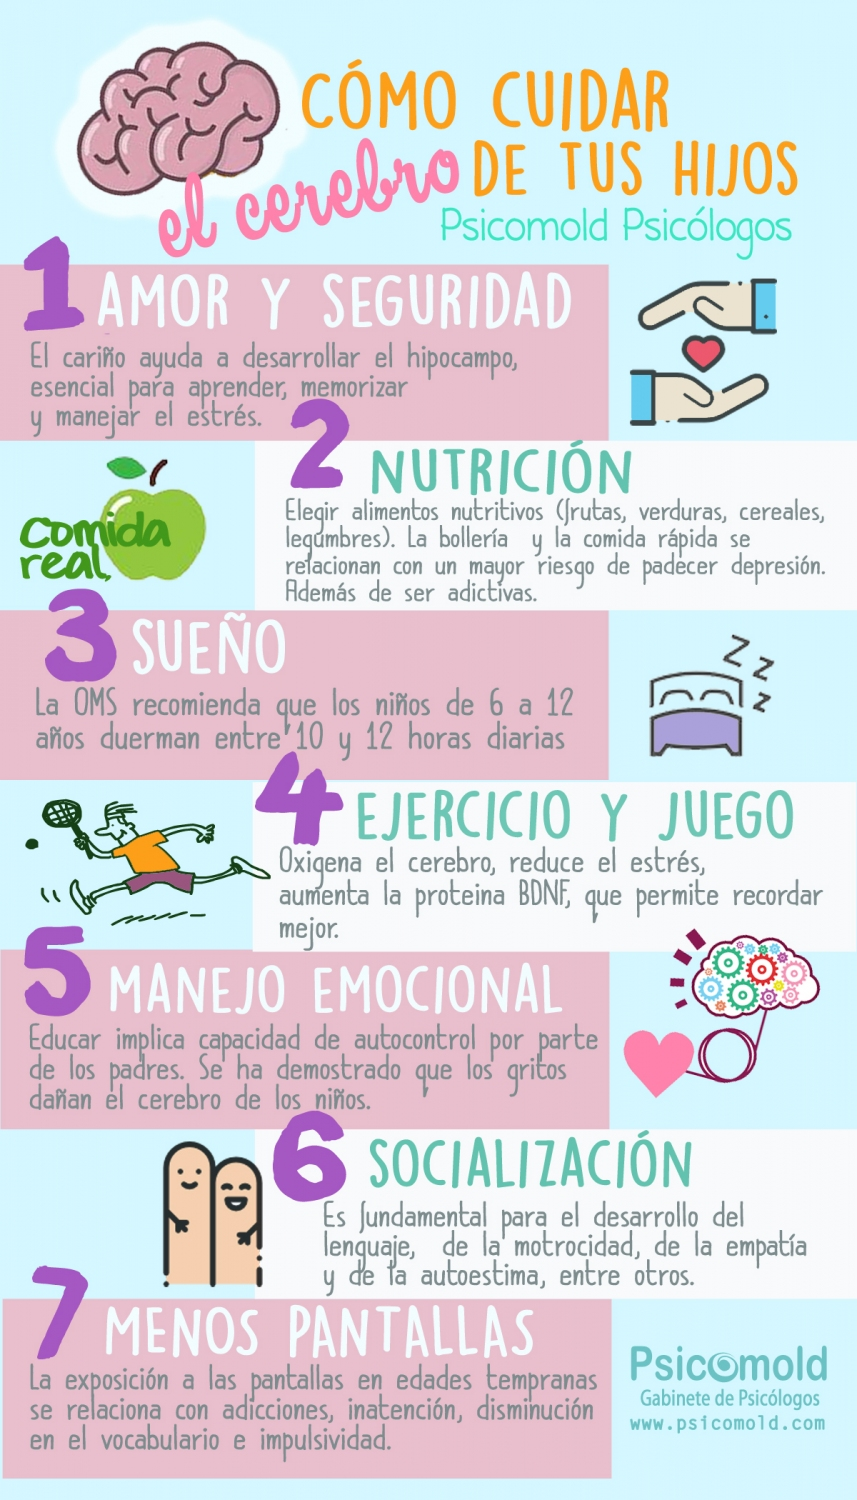 TIPS-cuidar-cerebro-hijos-blog-psicomold